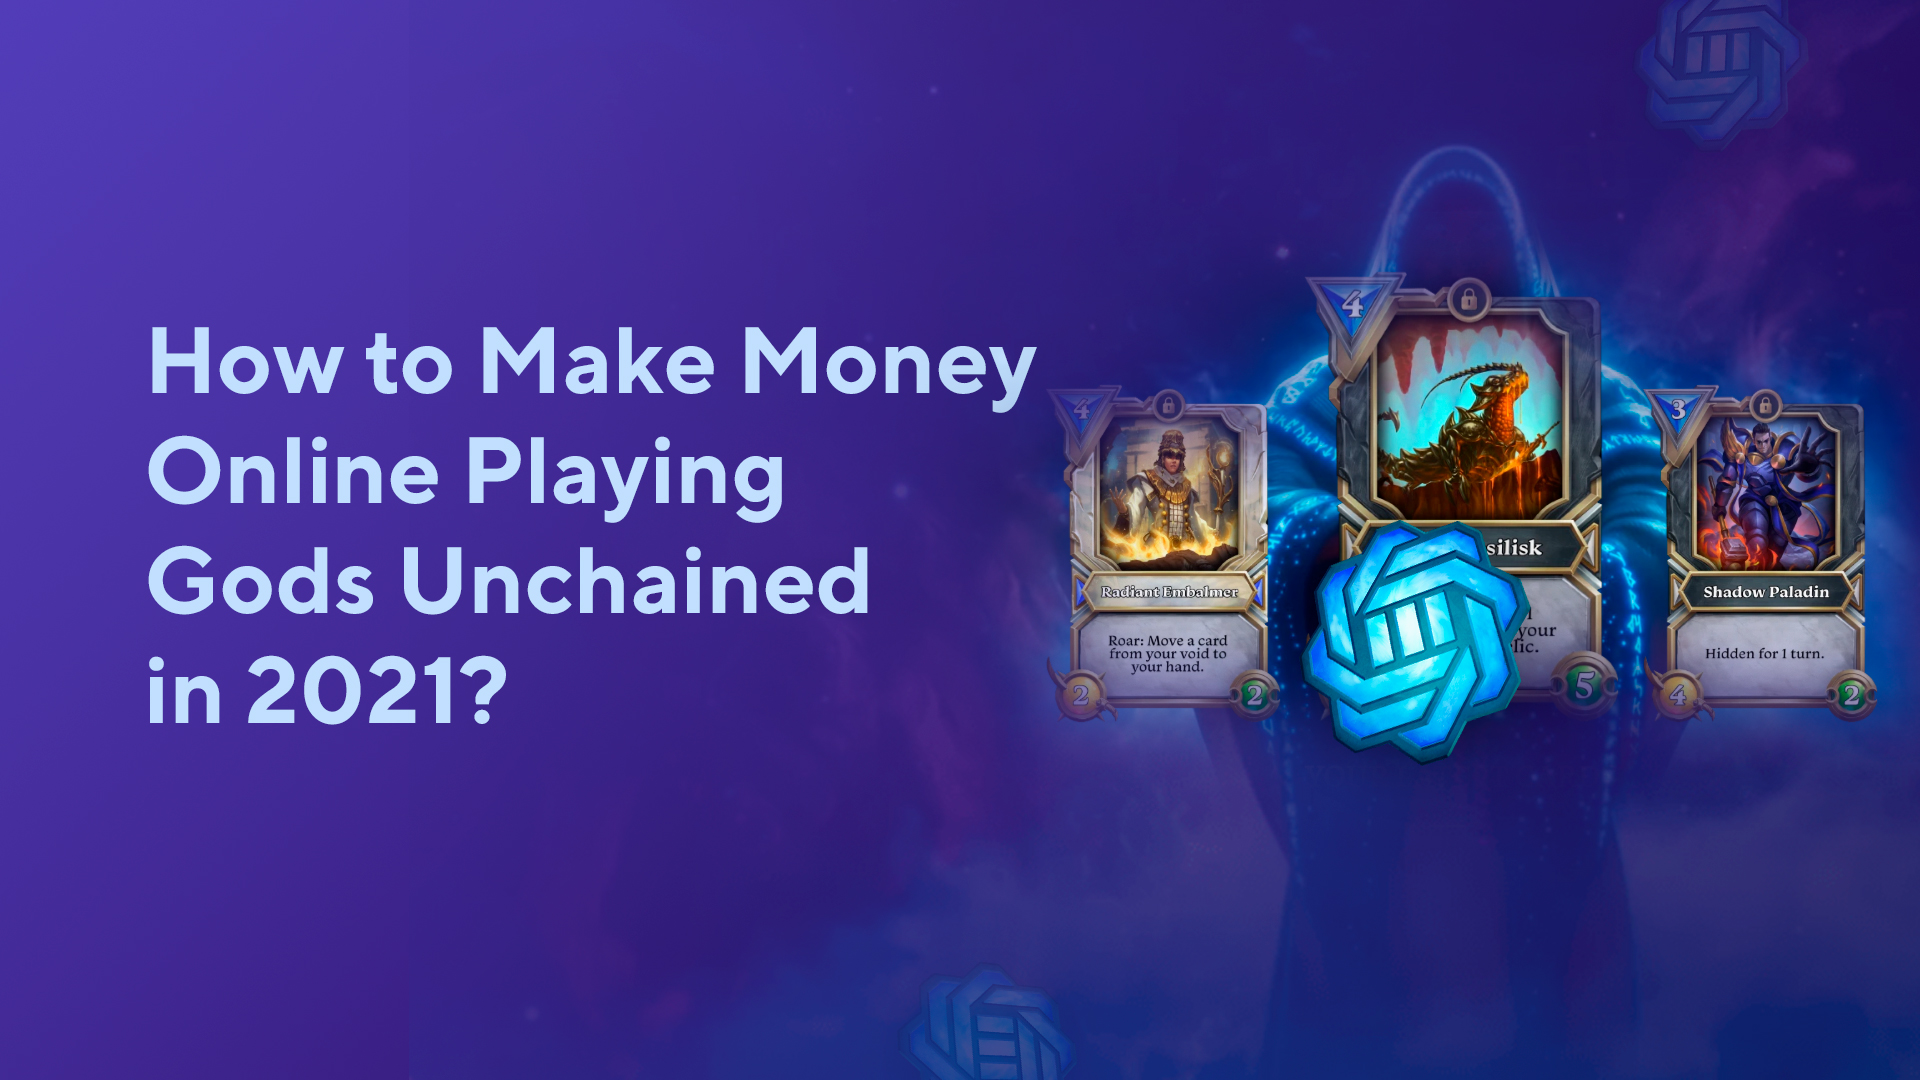 How to Make Money Online Playing Gods Unchained in 2021?